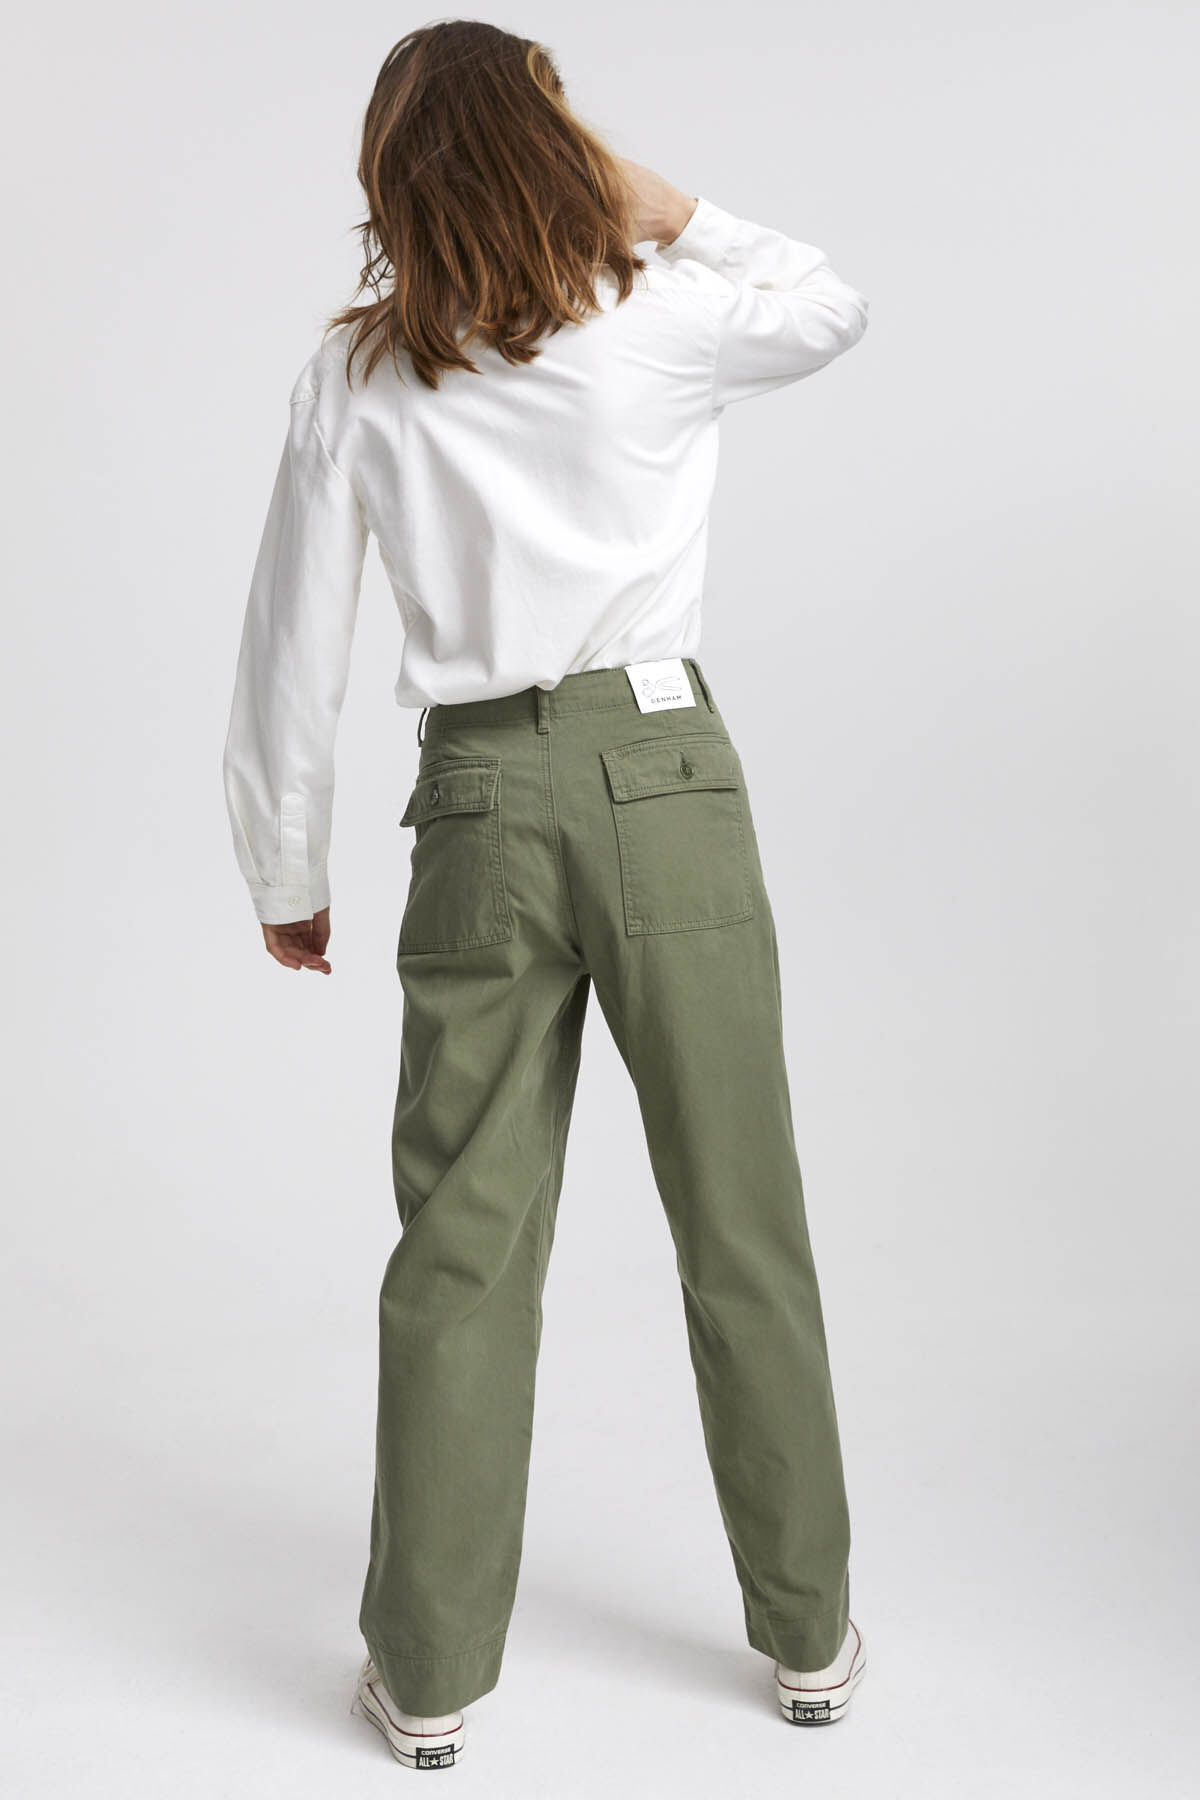 HAWTHORN PANT Soft Cotton Twill - Straight Fit